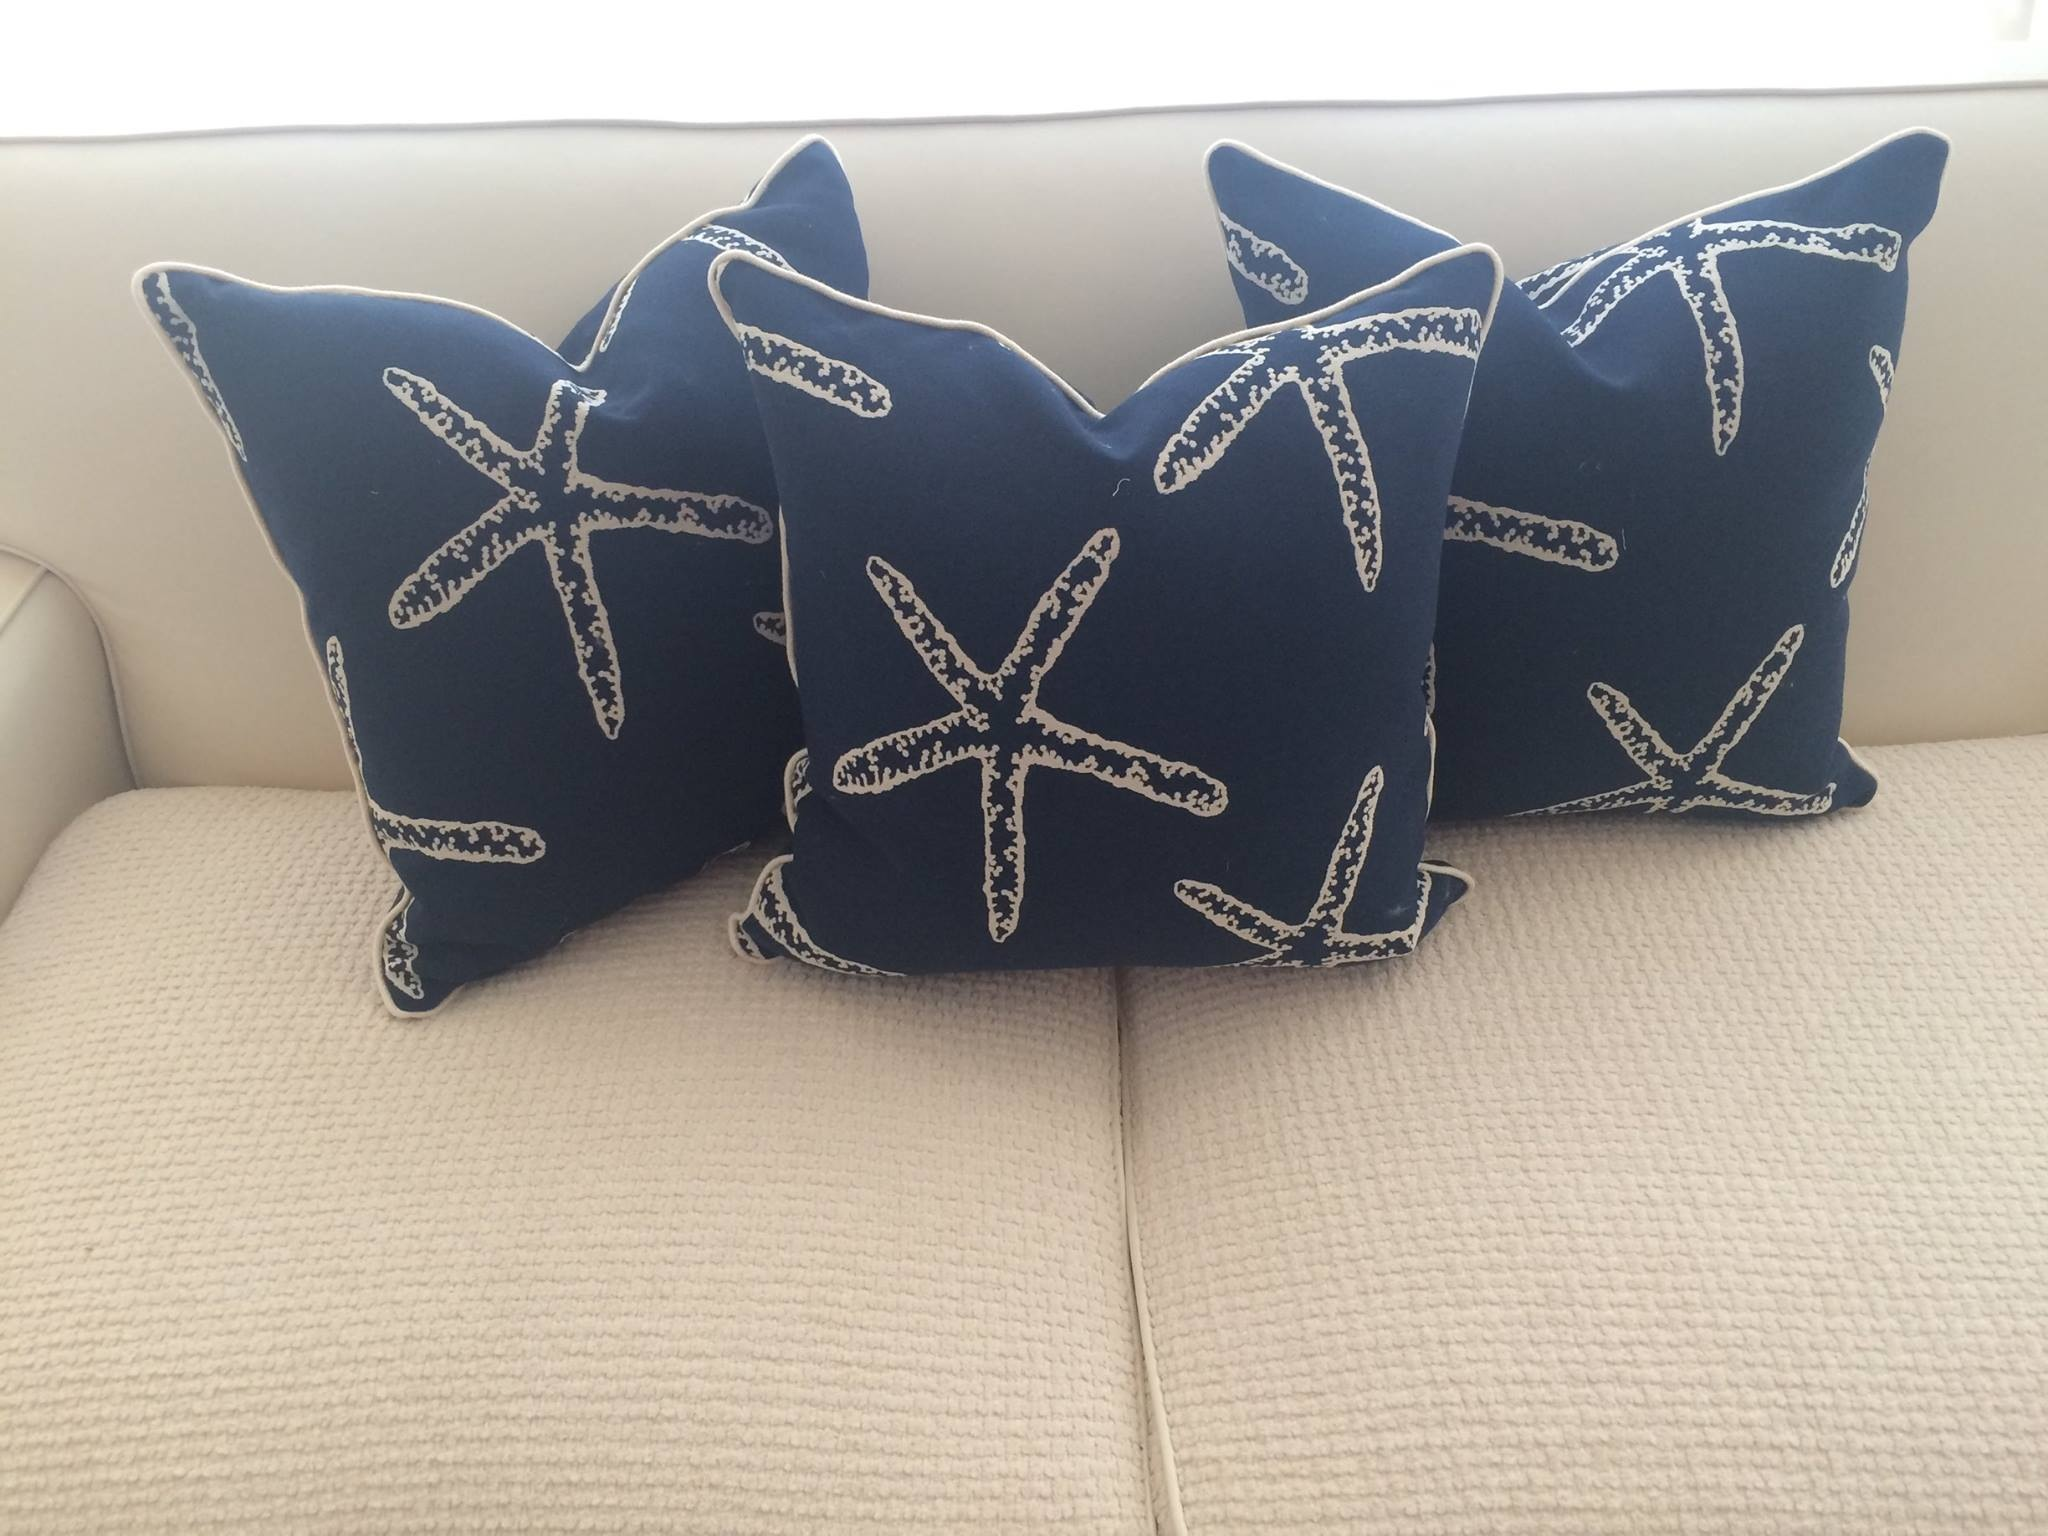 Starfish throw pillows